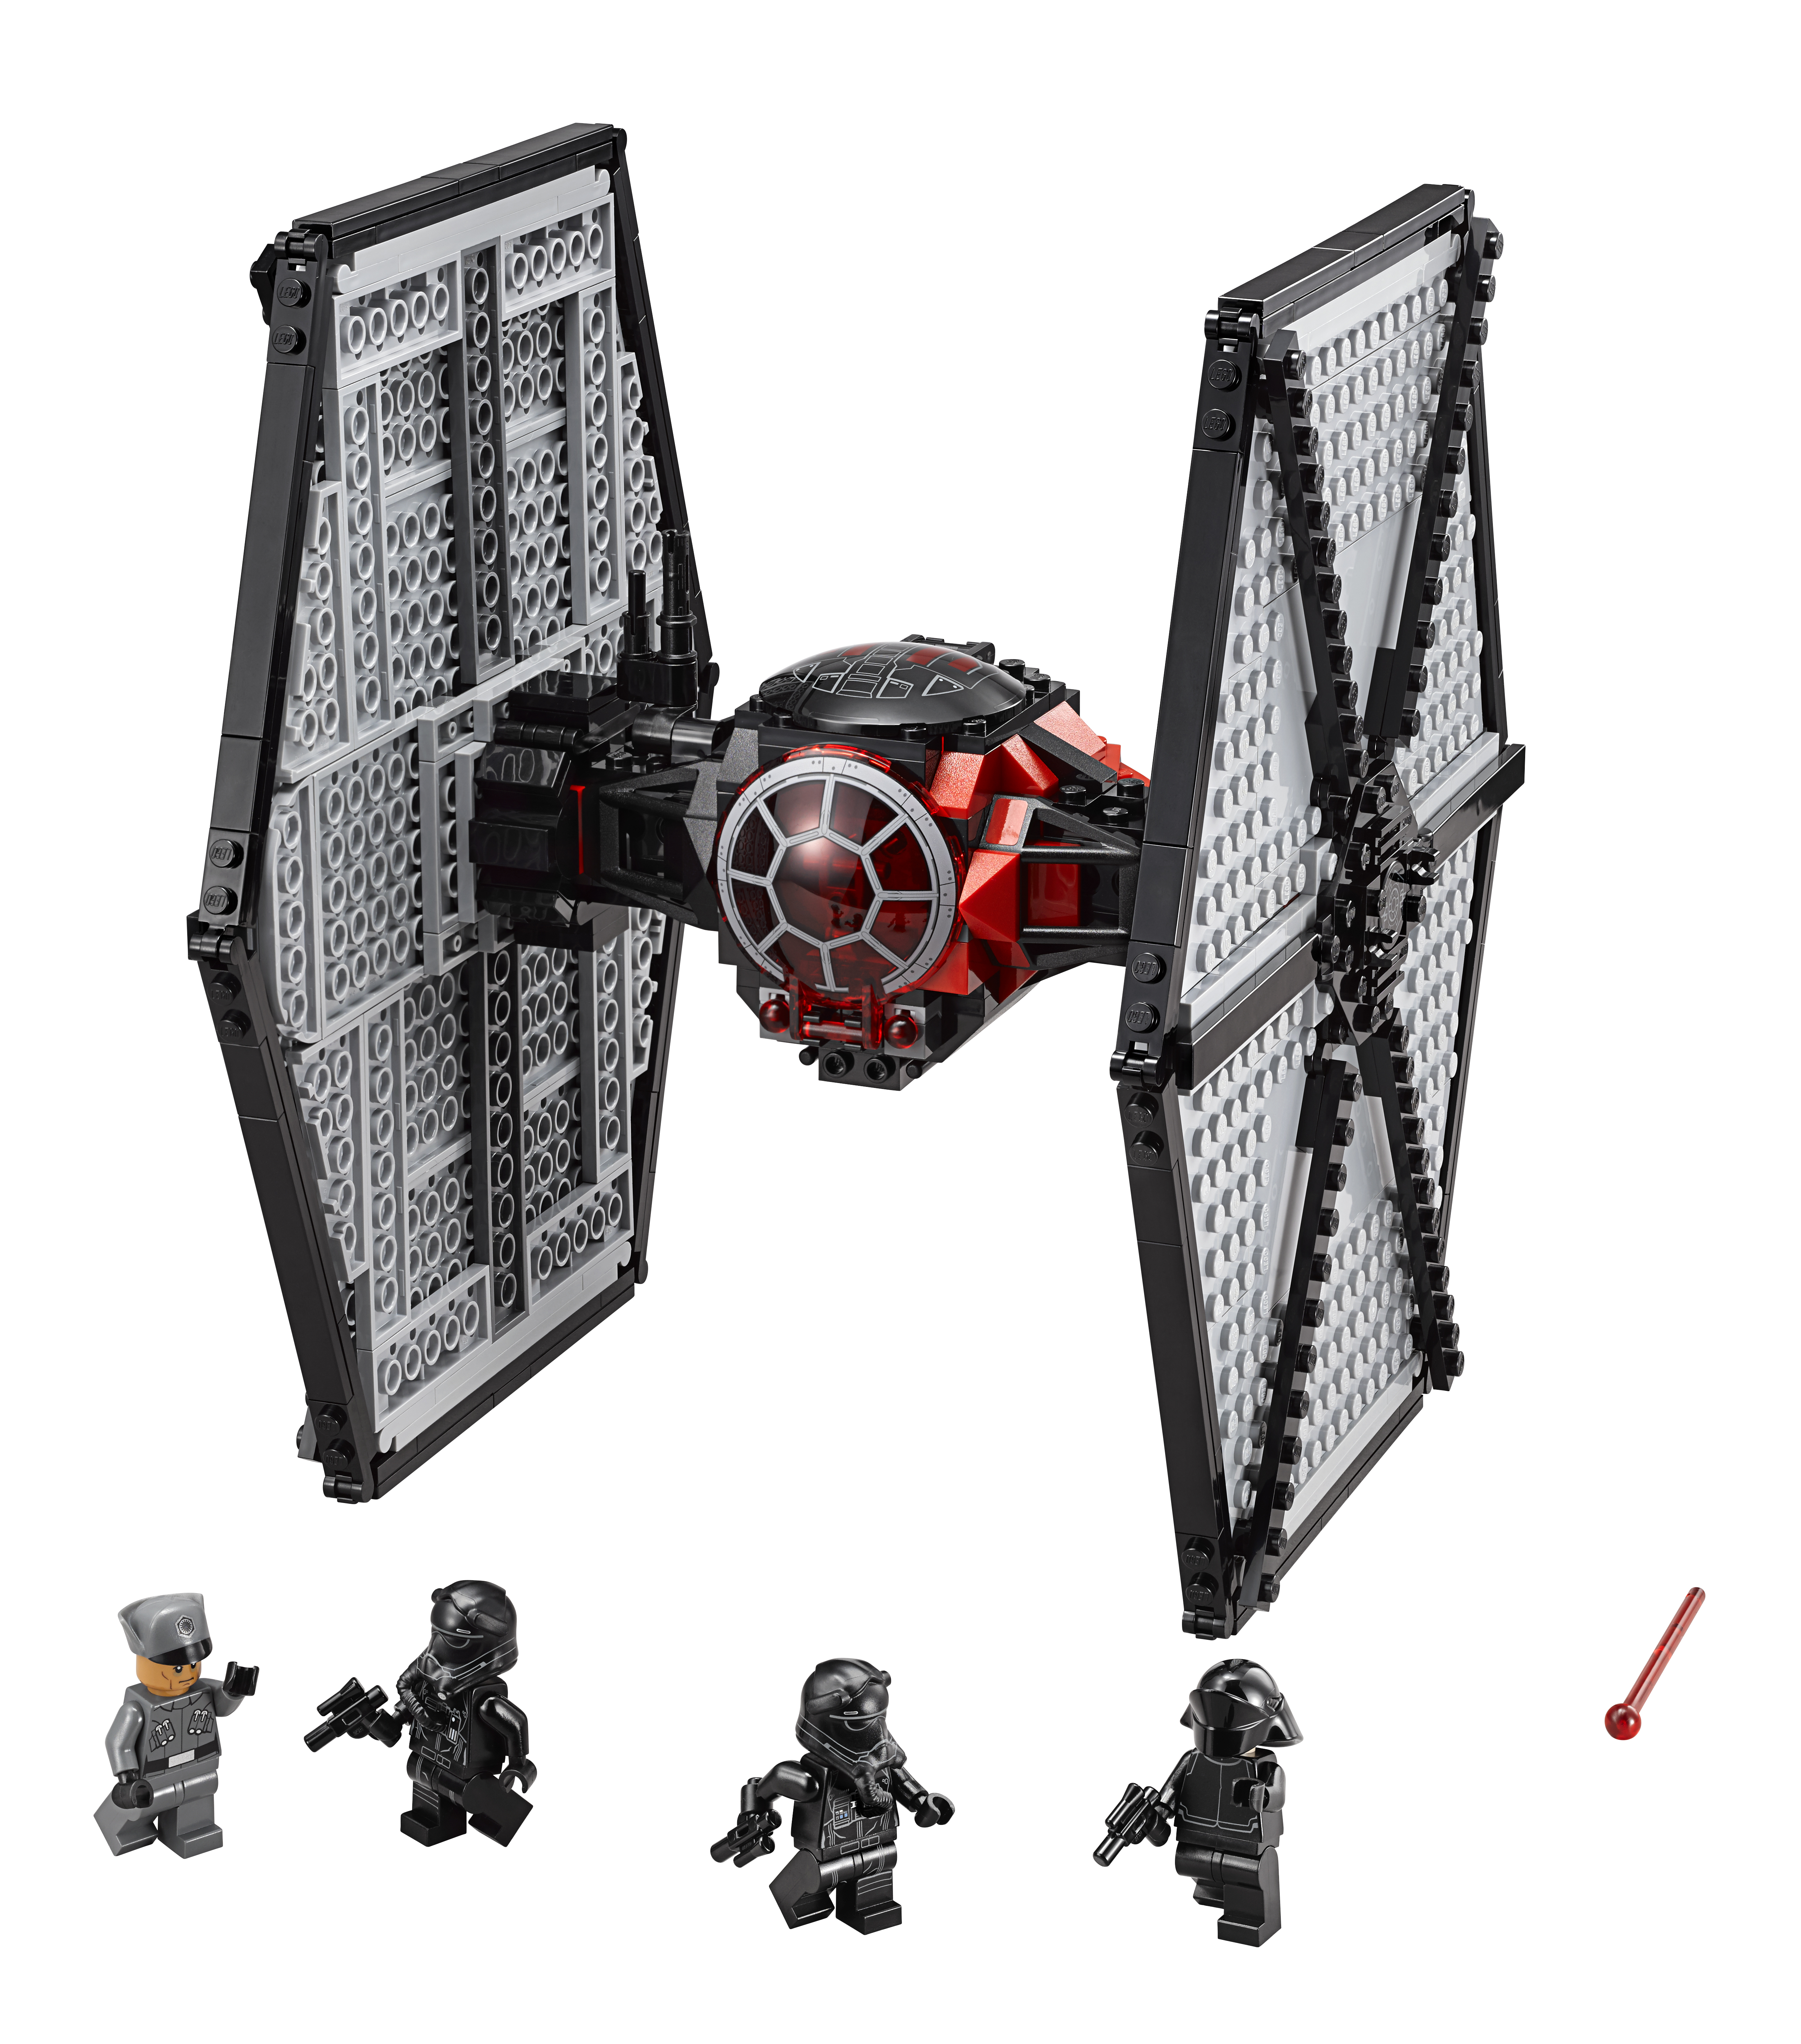 more official force awakens set images from lego